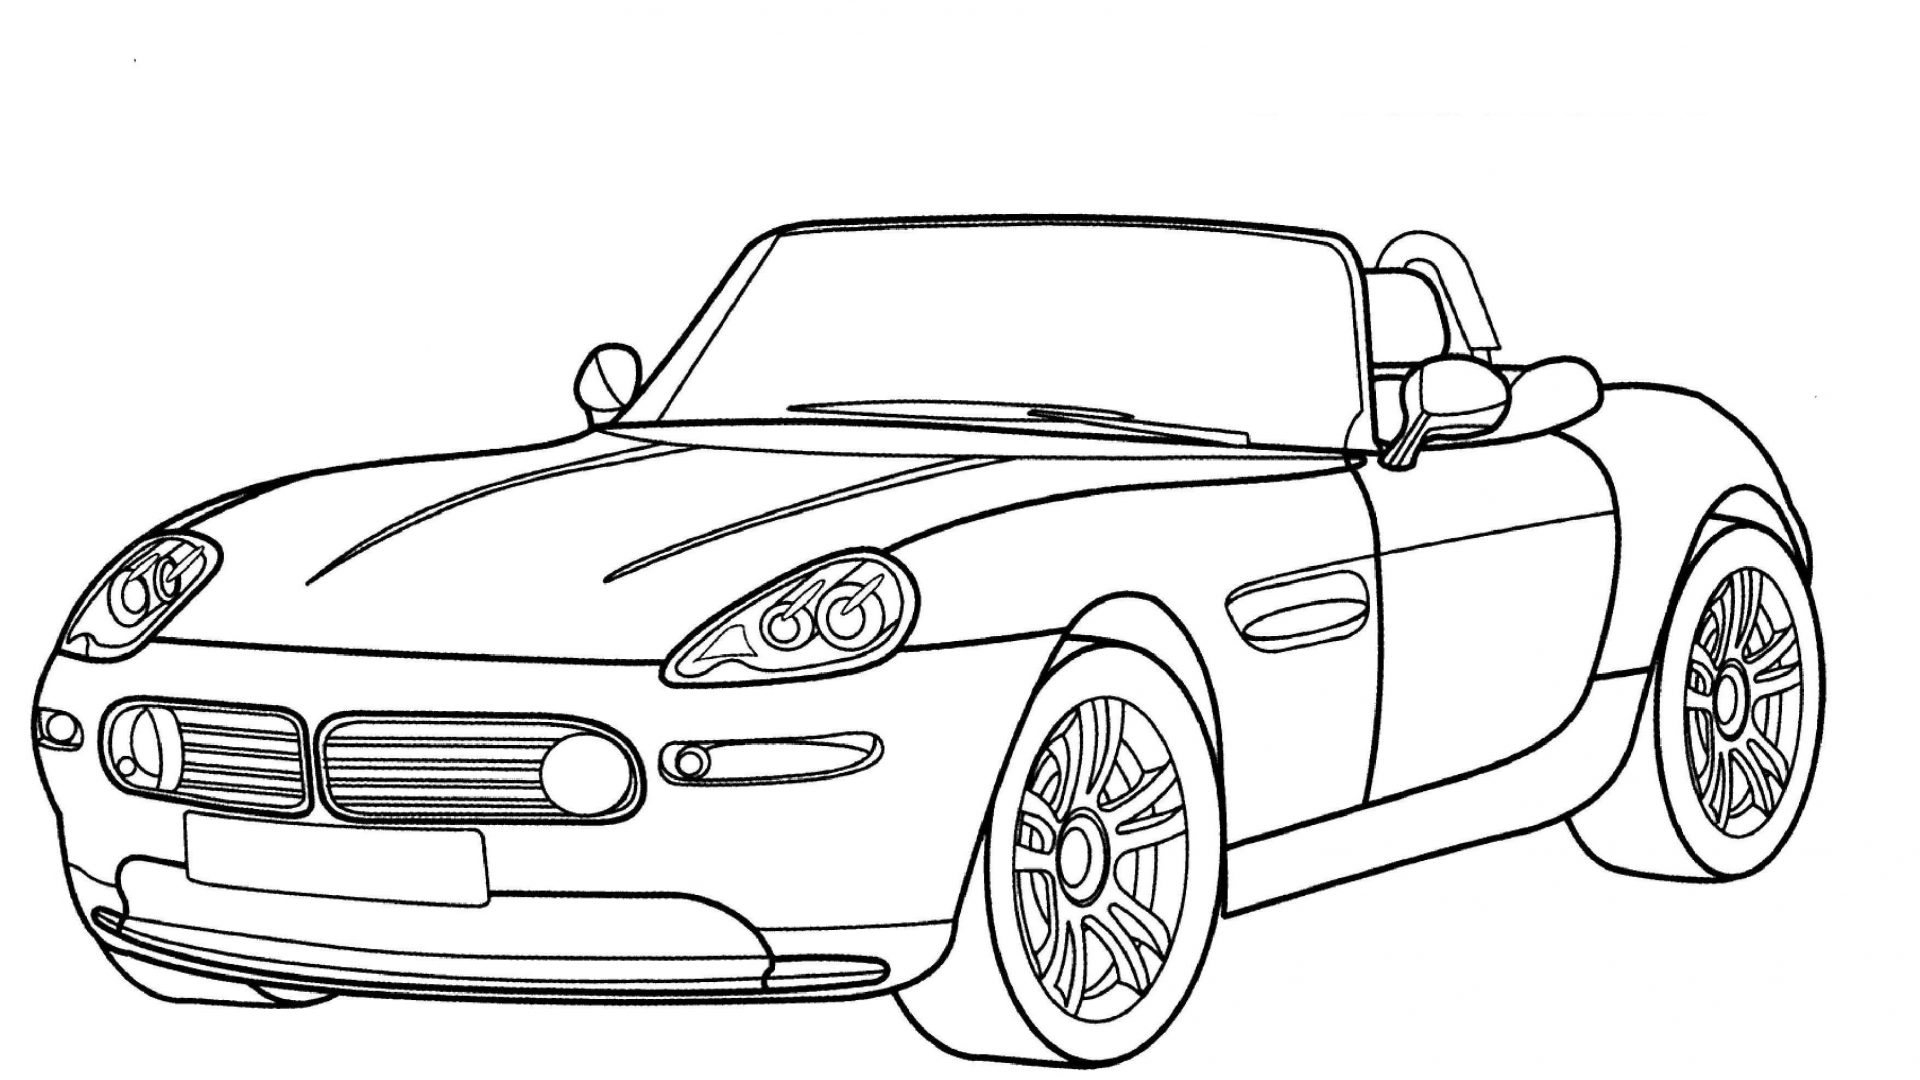 nissan gtr colouring pages gtr free coloring pages gtr nissan pages colouring